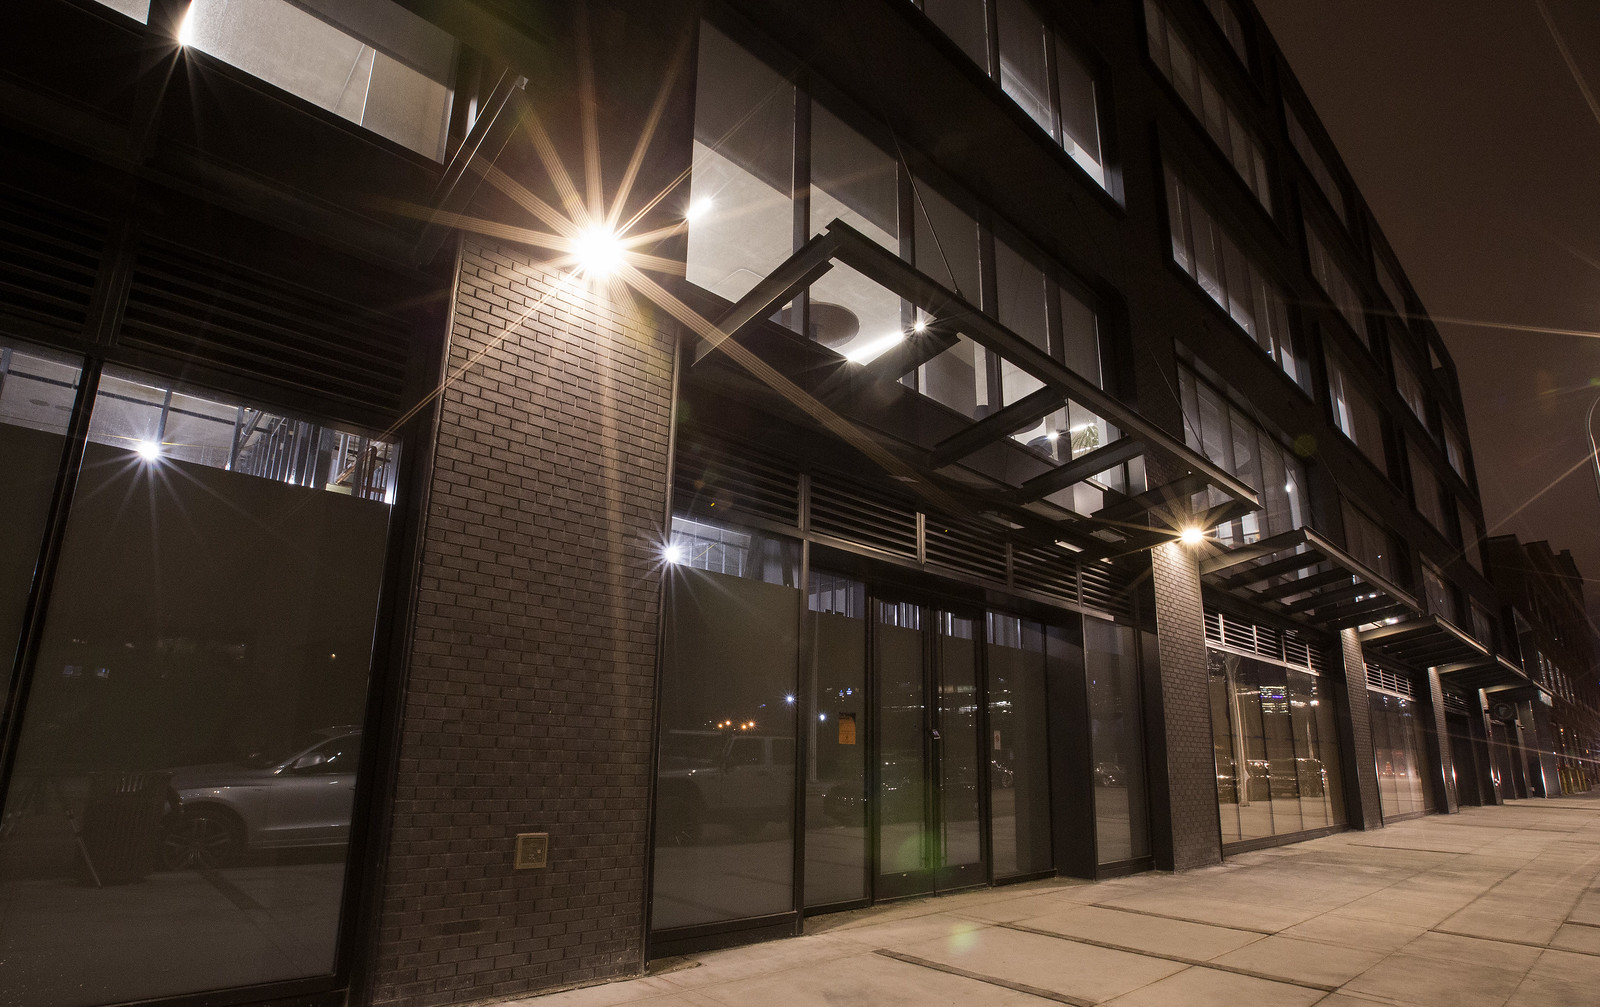 The modern exterior of an office building at night.